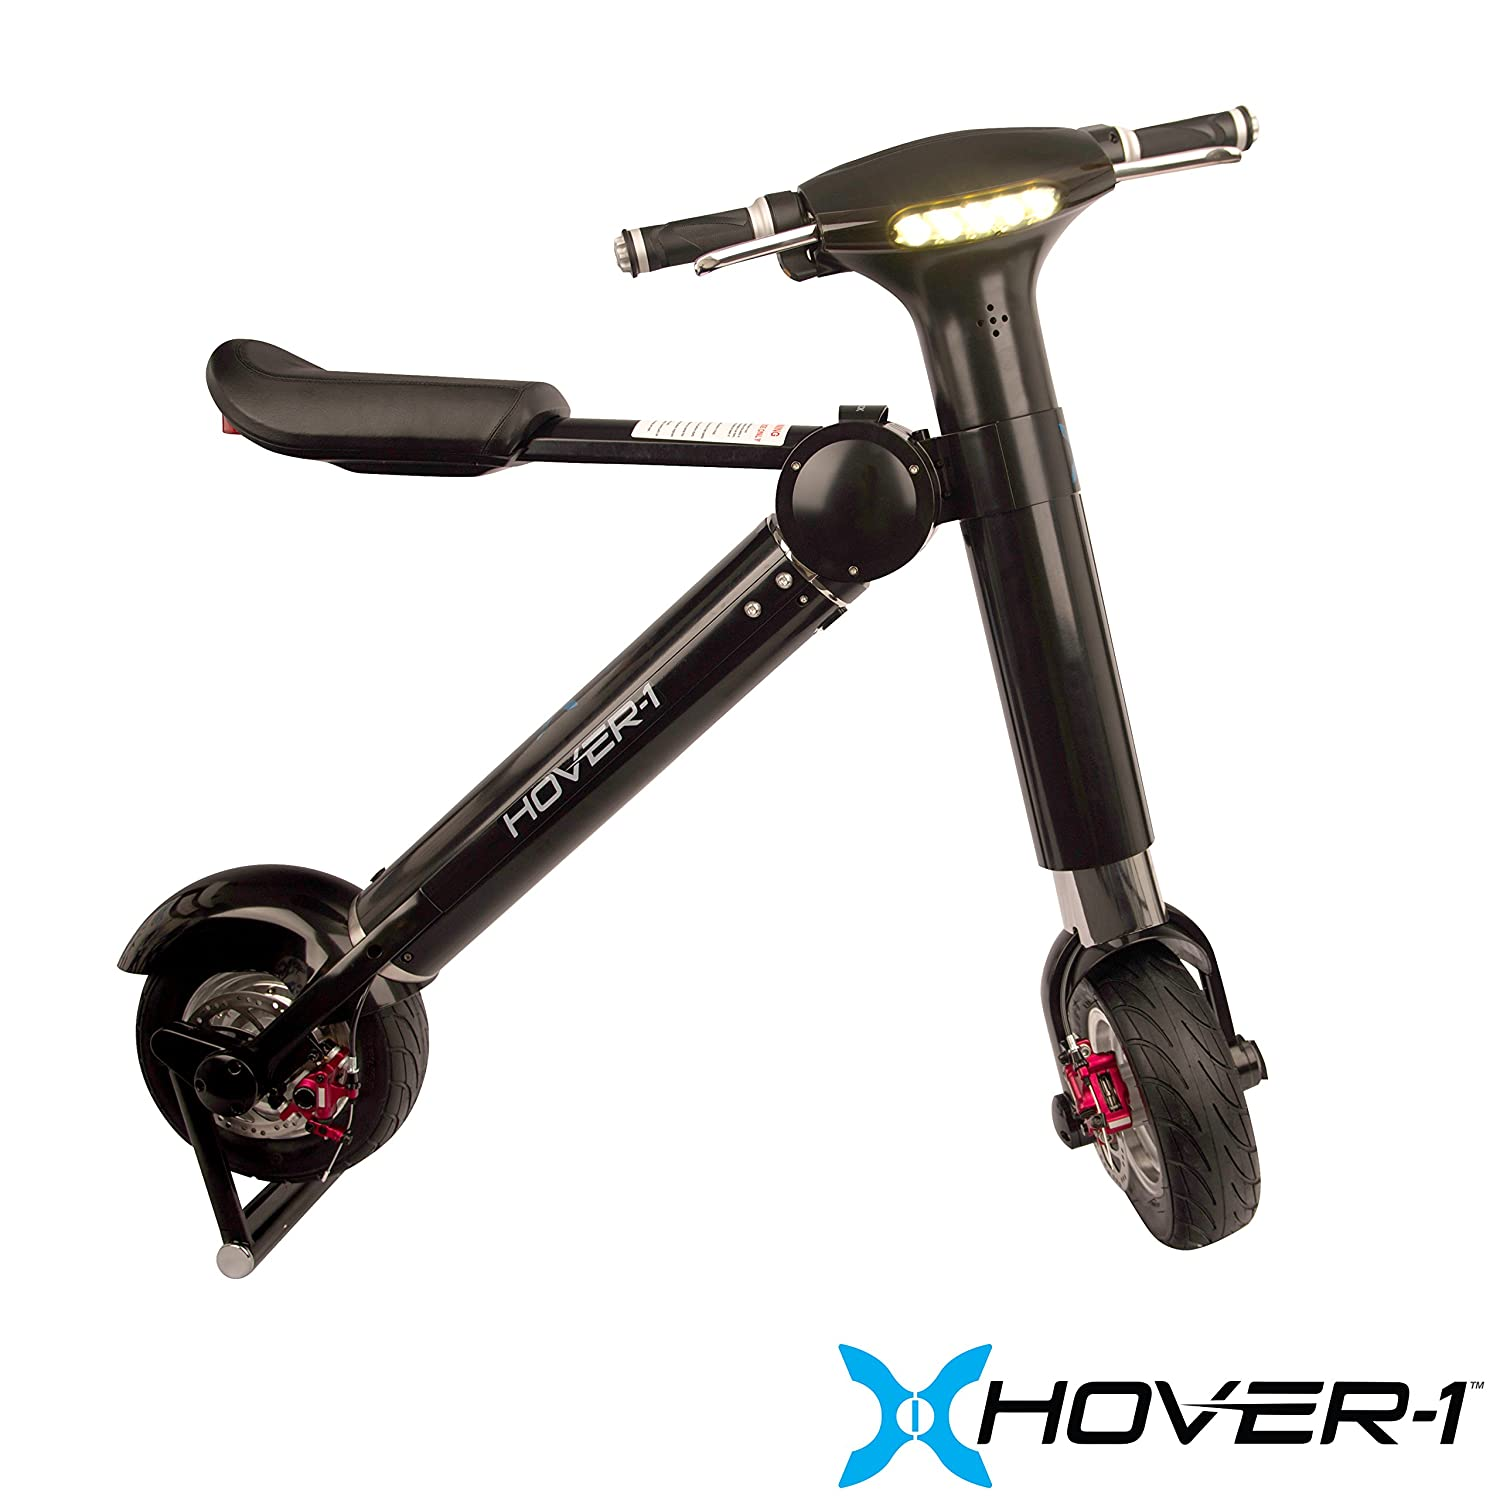 hover-1 xls e-bike folding electric scooter review: best folding electric scooter